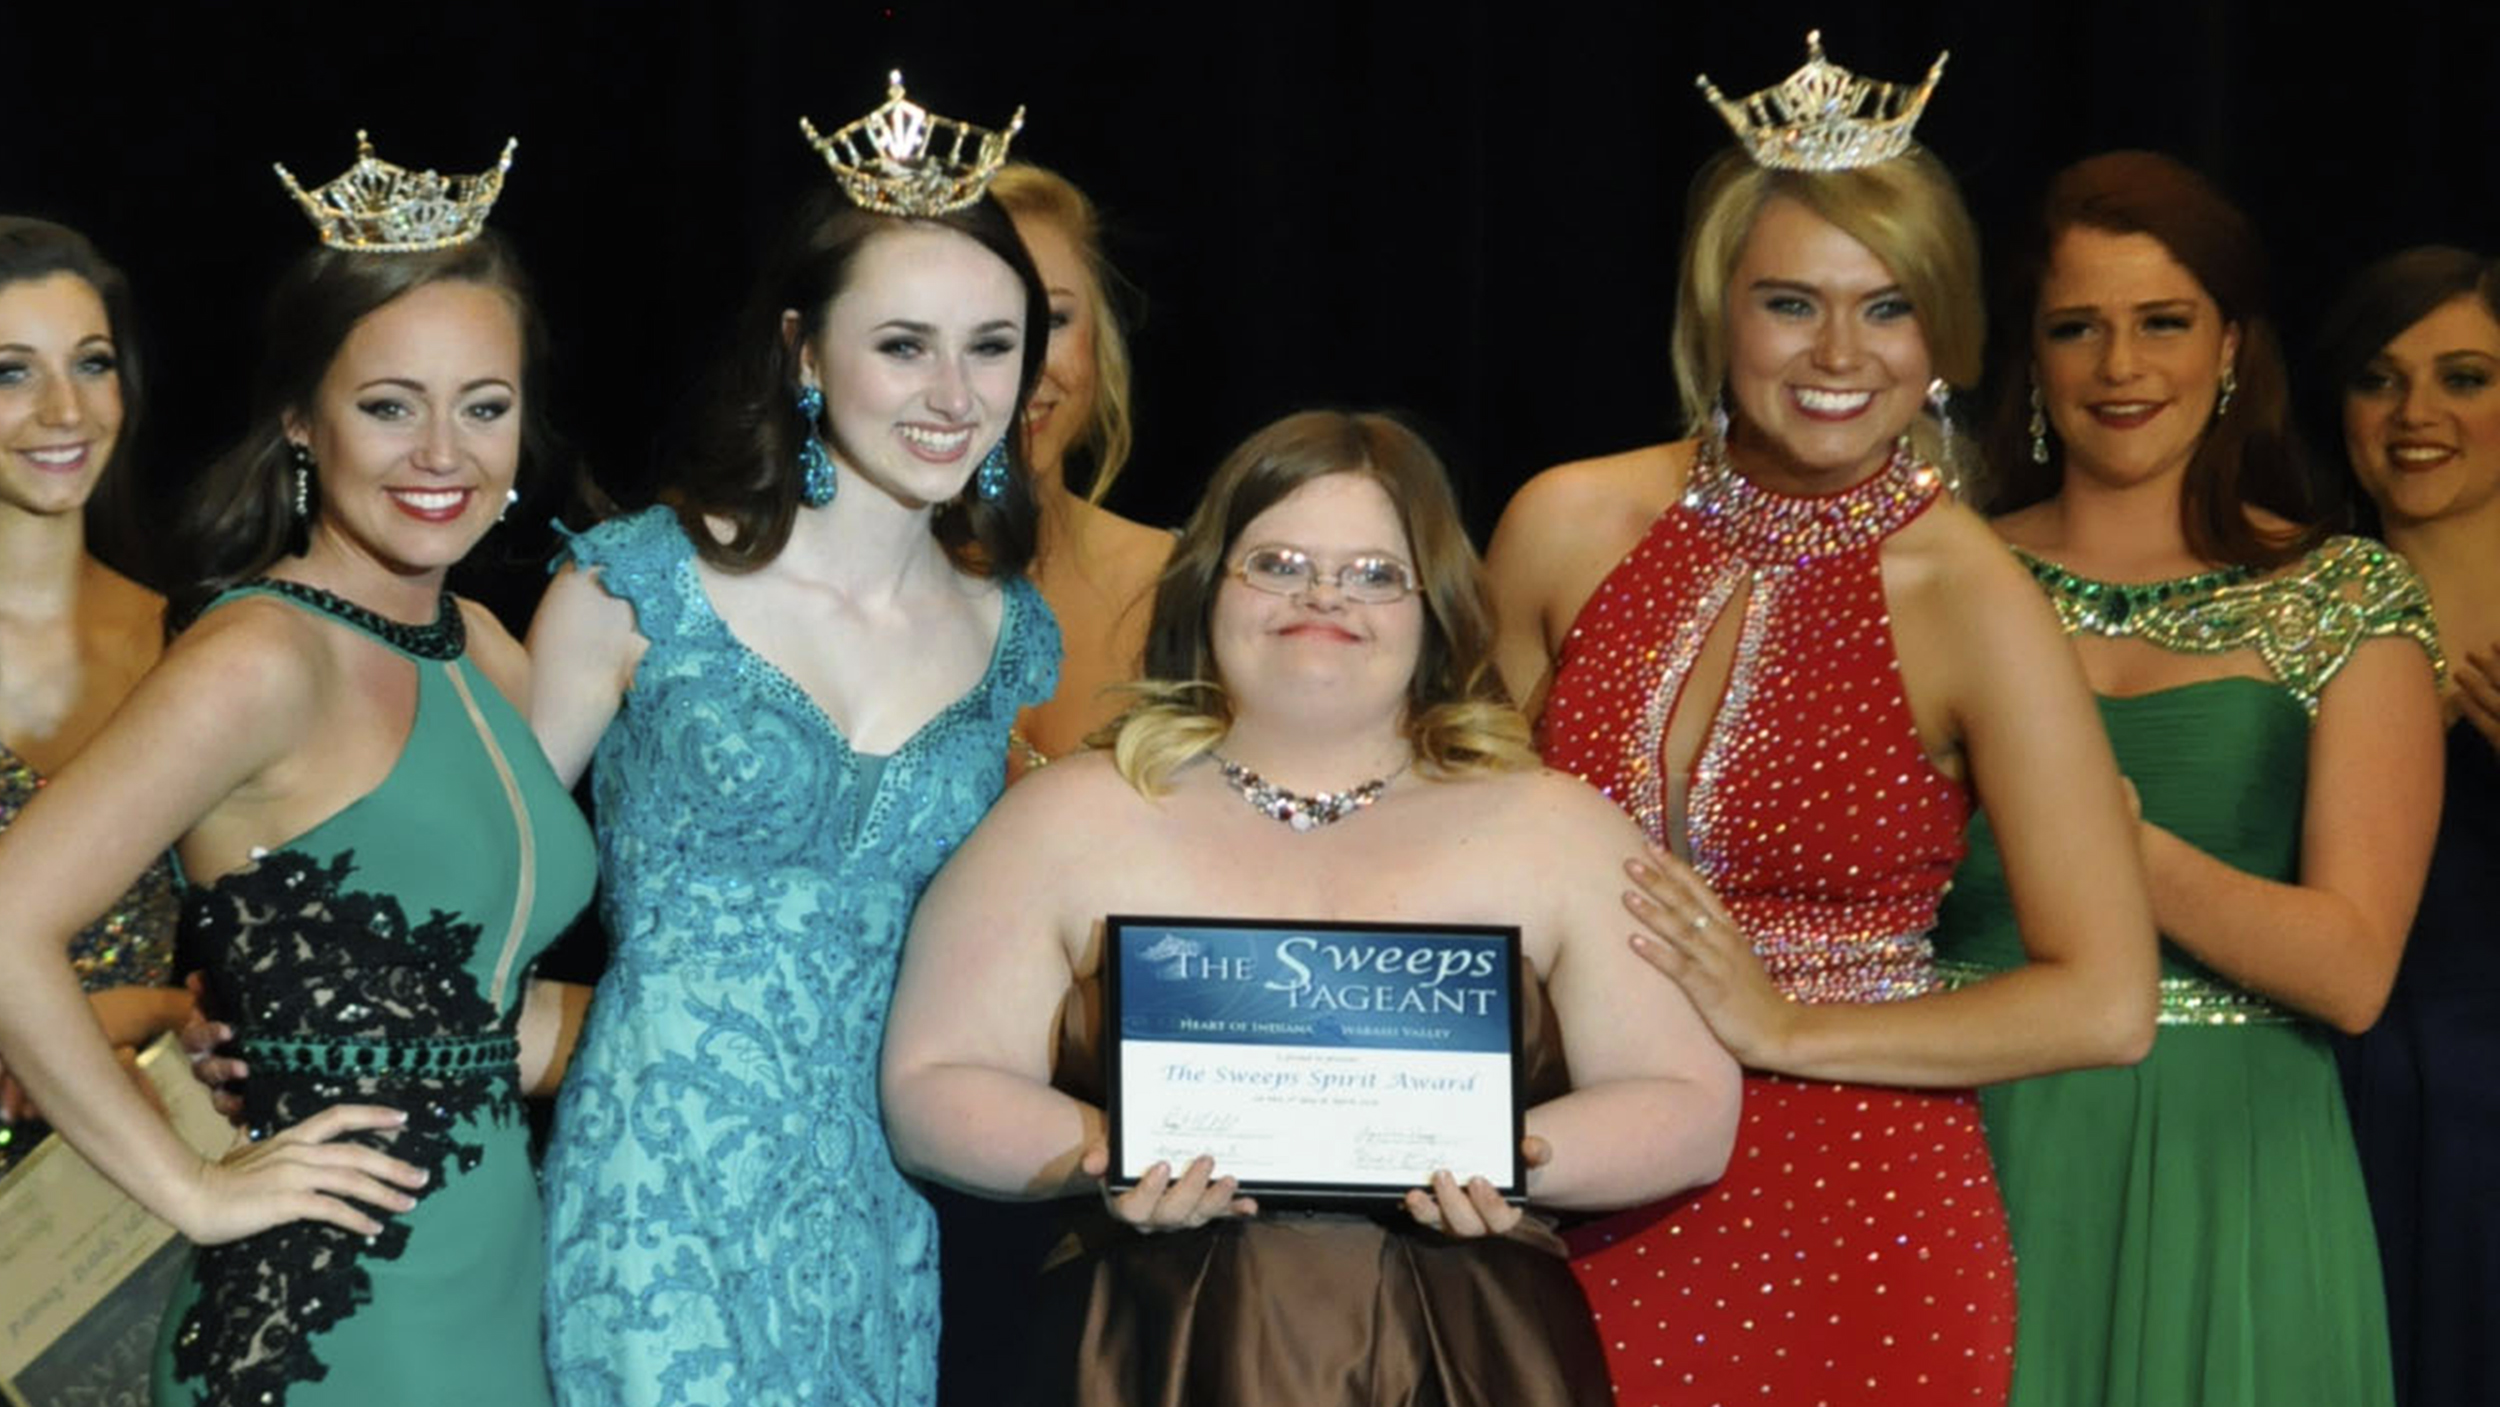 teen down syndrome sets sights on miss america pageant teen down syndrome sets sights on miss america pageant com